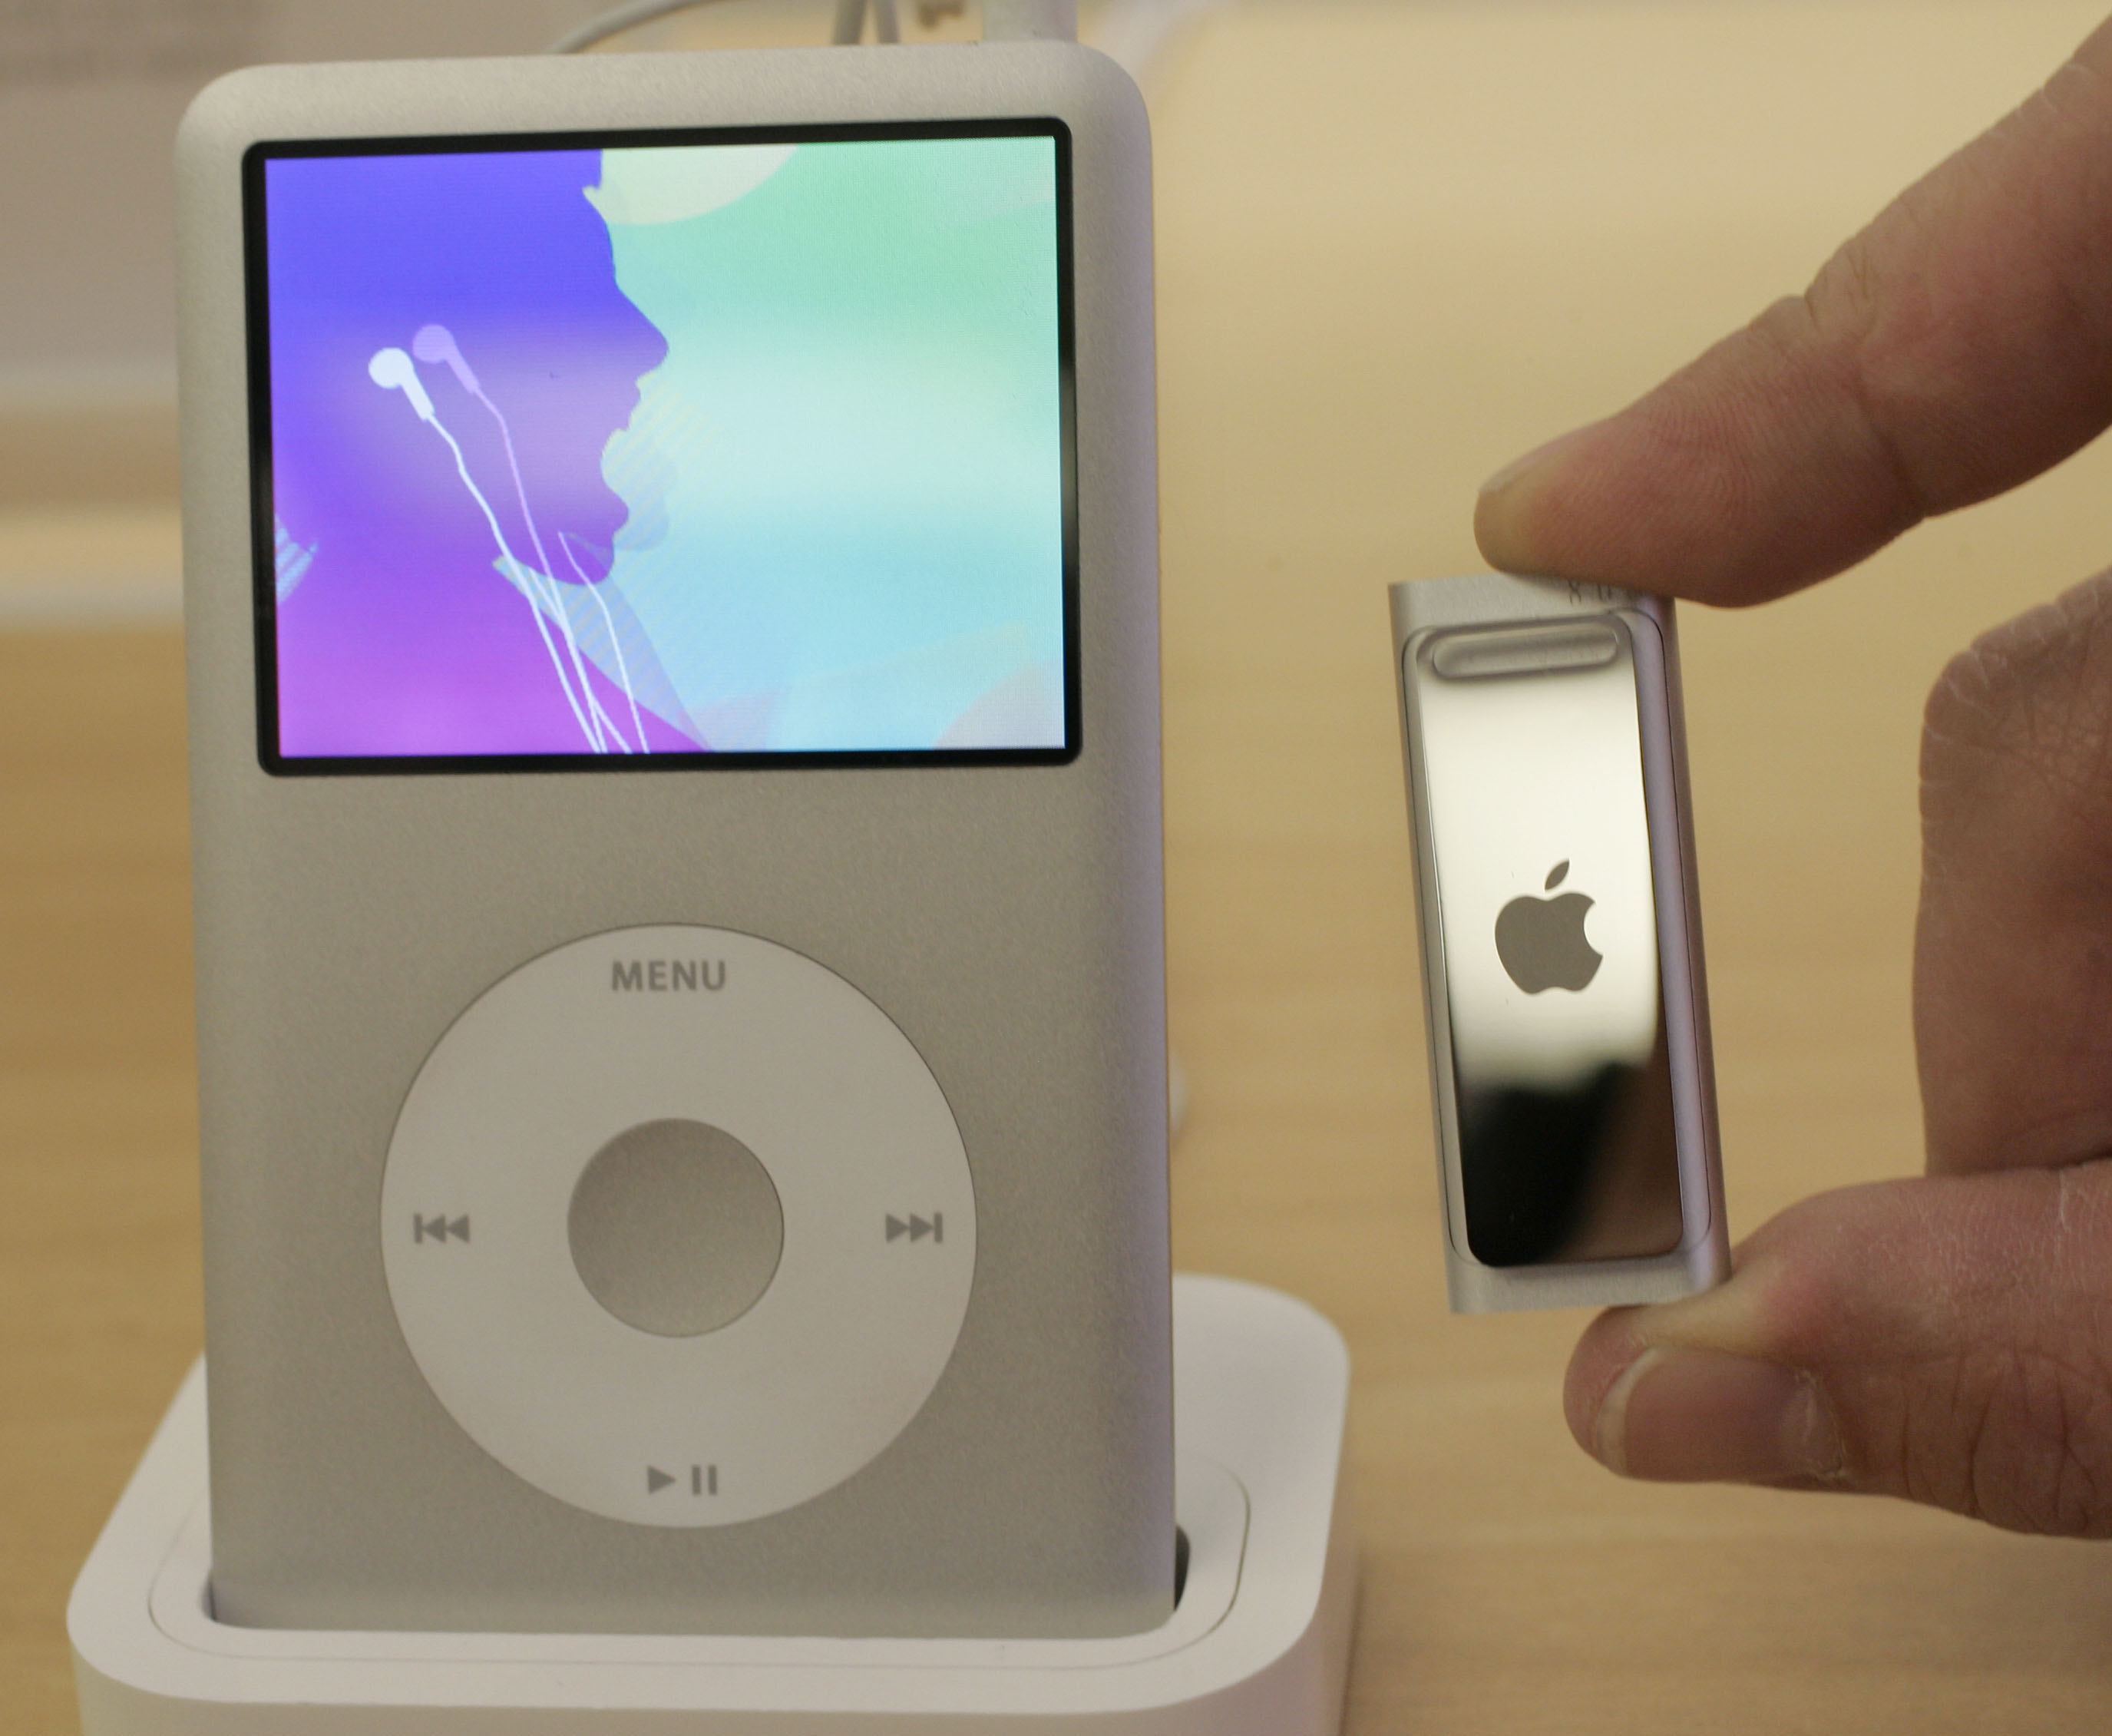 <div class='meta'><div class='origin-logo' data-origin='AP'></div><span class='caption-text' data-credit='AP Photo/Paul Sakuma'>Close up view of the new Apple iPod Shuffle, right, with the iPod Classic, left, at an Apple store in Palo Alto, Calif., Thursday, March 12, 2009.</span></div>